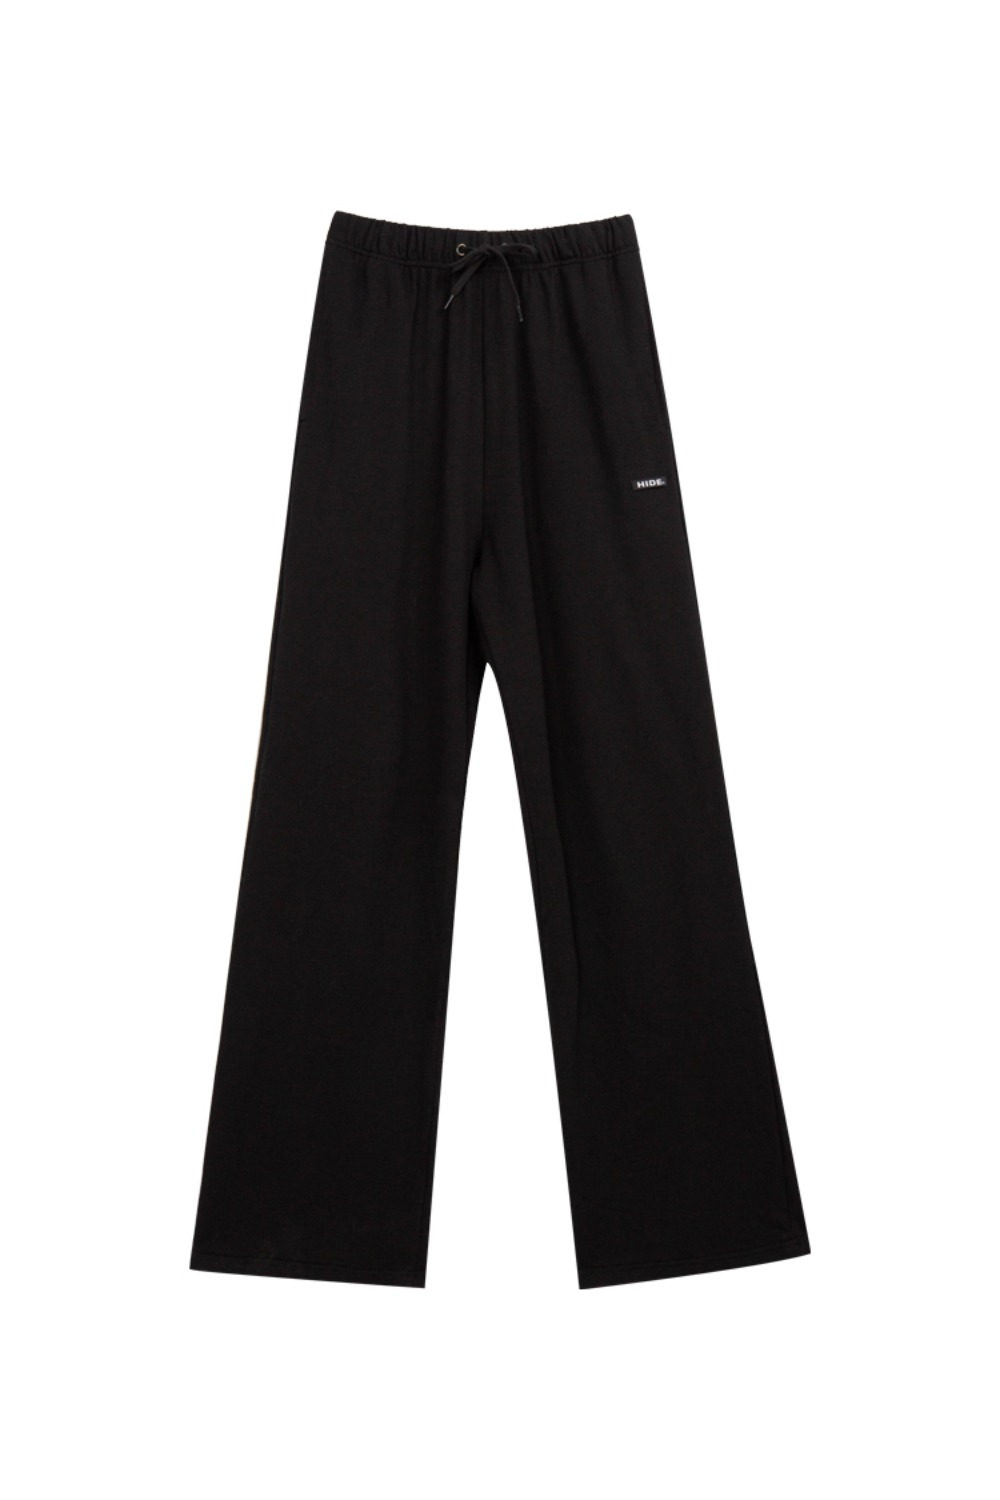 HIDE Mirror Wide Pants BLACK